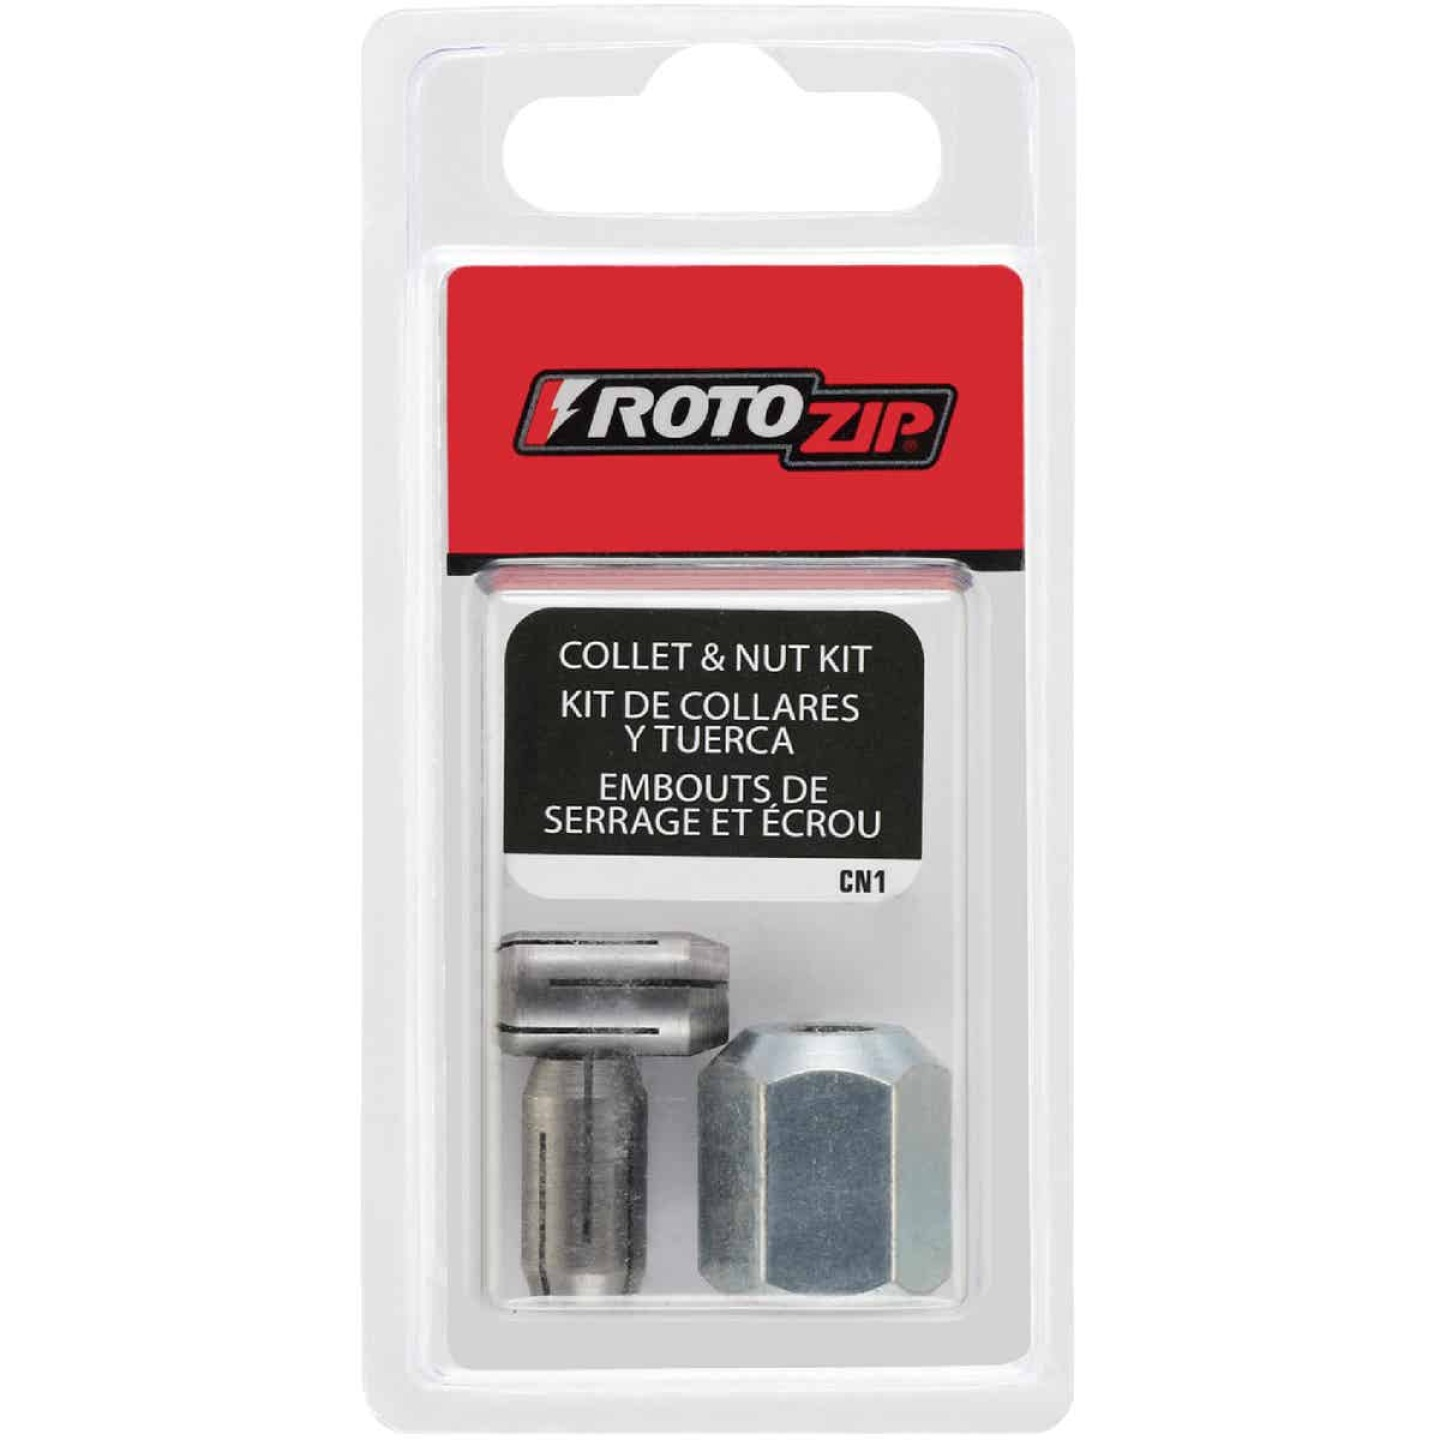 RotoZip 1/8 In., 5/32 In., 1/4 In. Collet Nut Kit (4-Pieces) Image 2